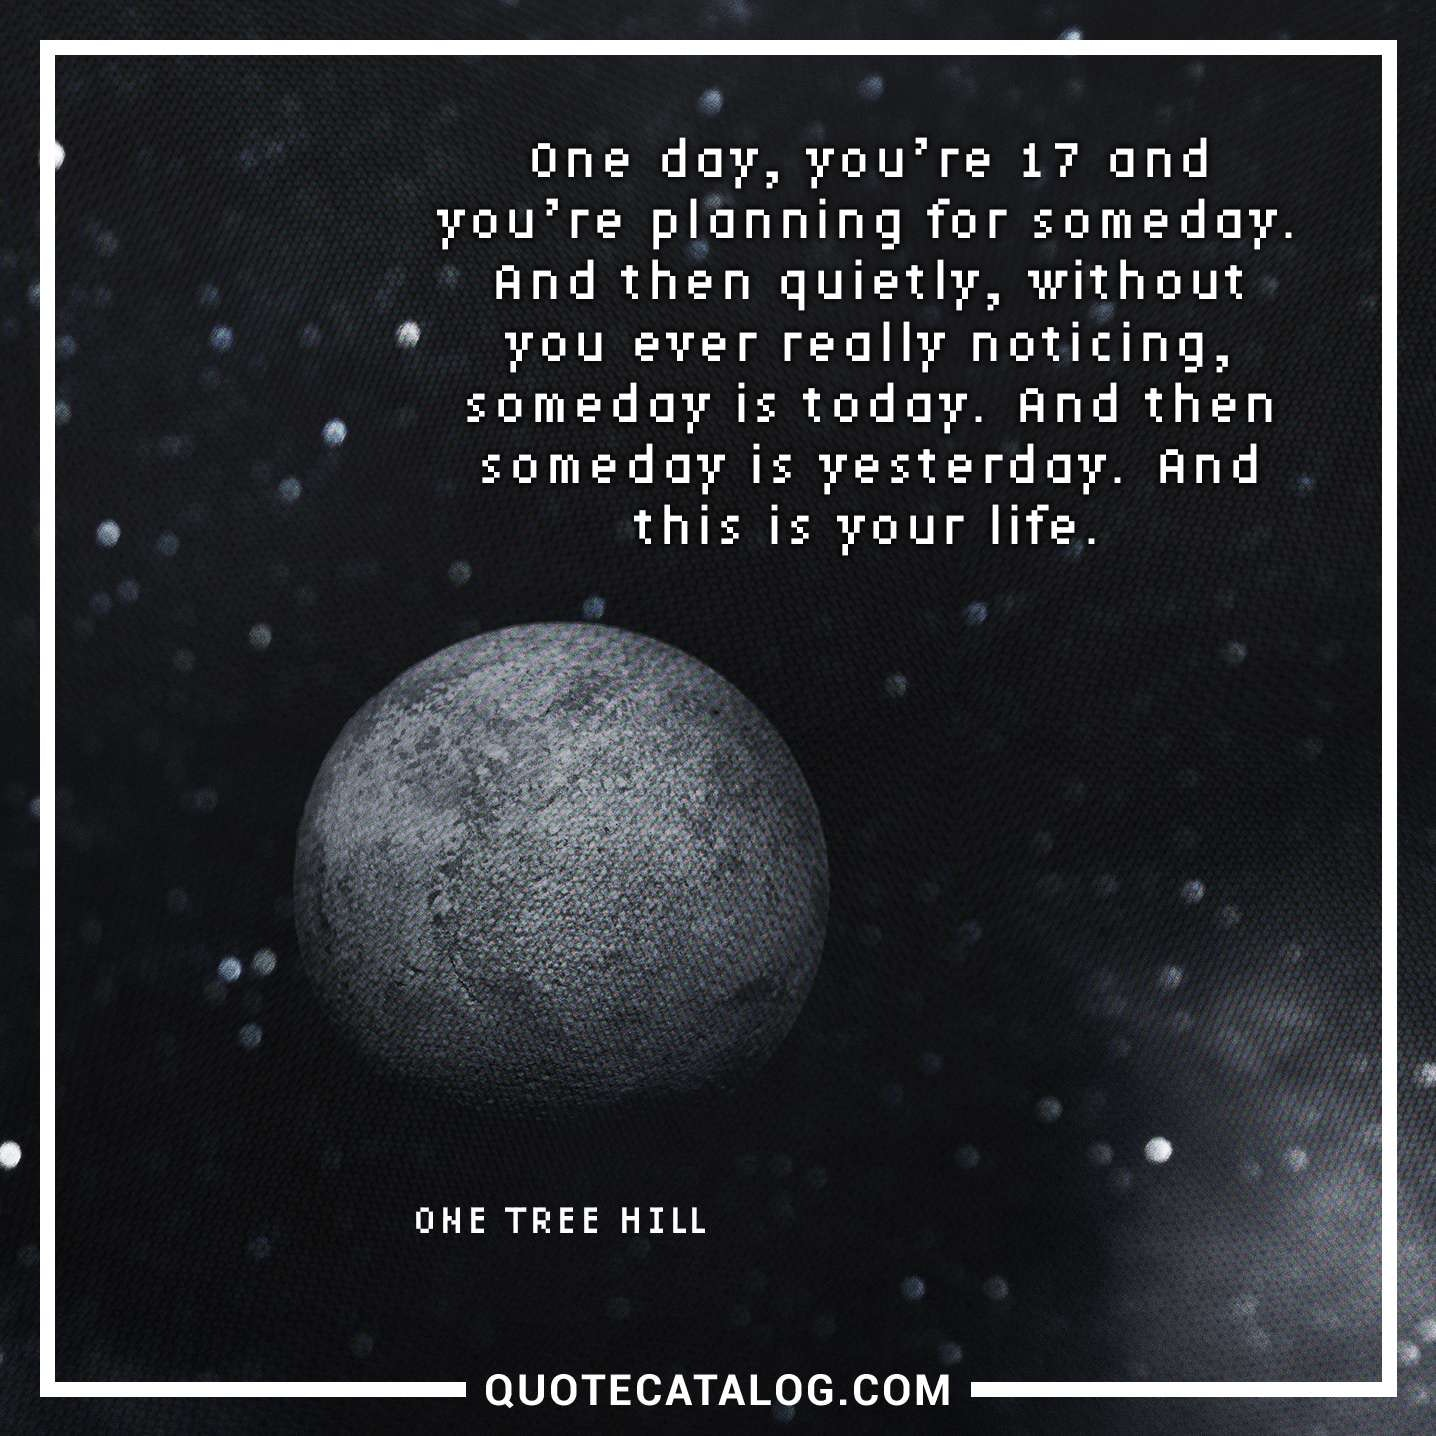 One Day Youu0027re Seventeen And Planning For Someday. And Then Quietly And  Without You Ever Really Noticing, Someday Is Today. And That Someday Is  Yesterday.